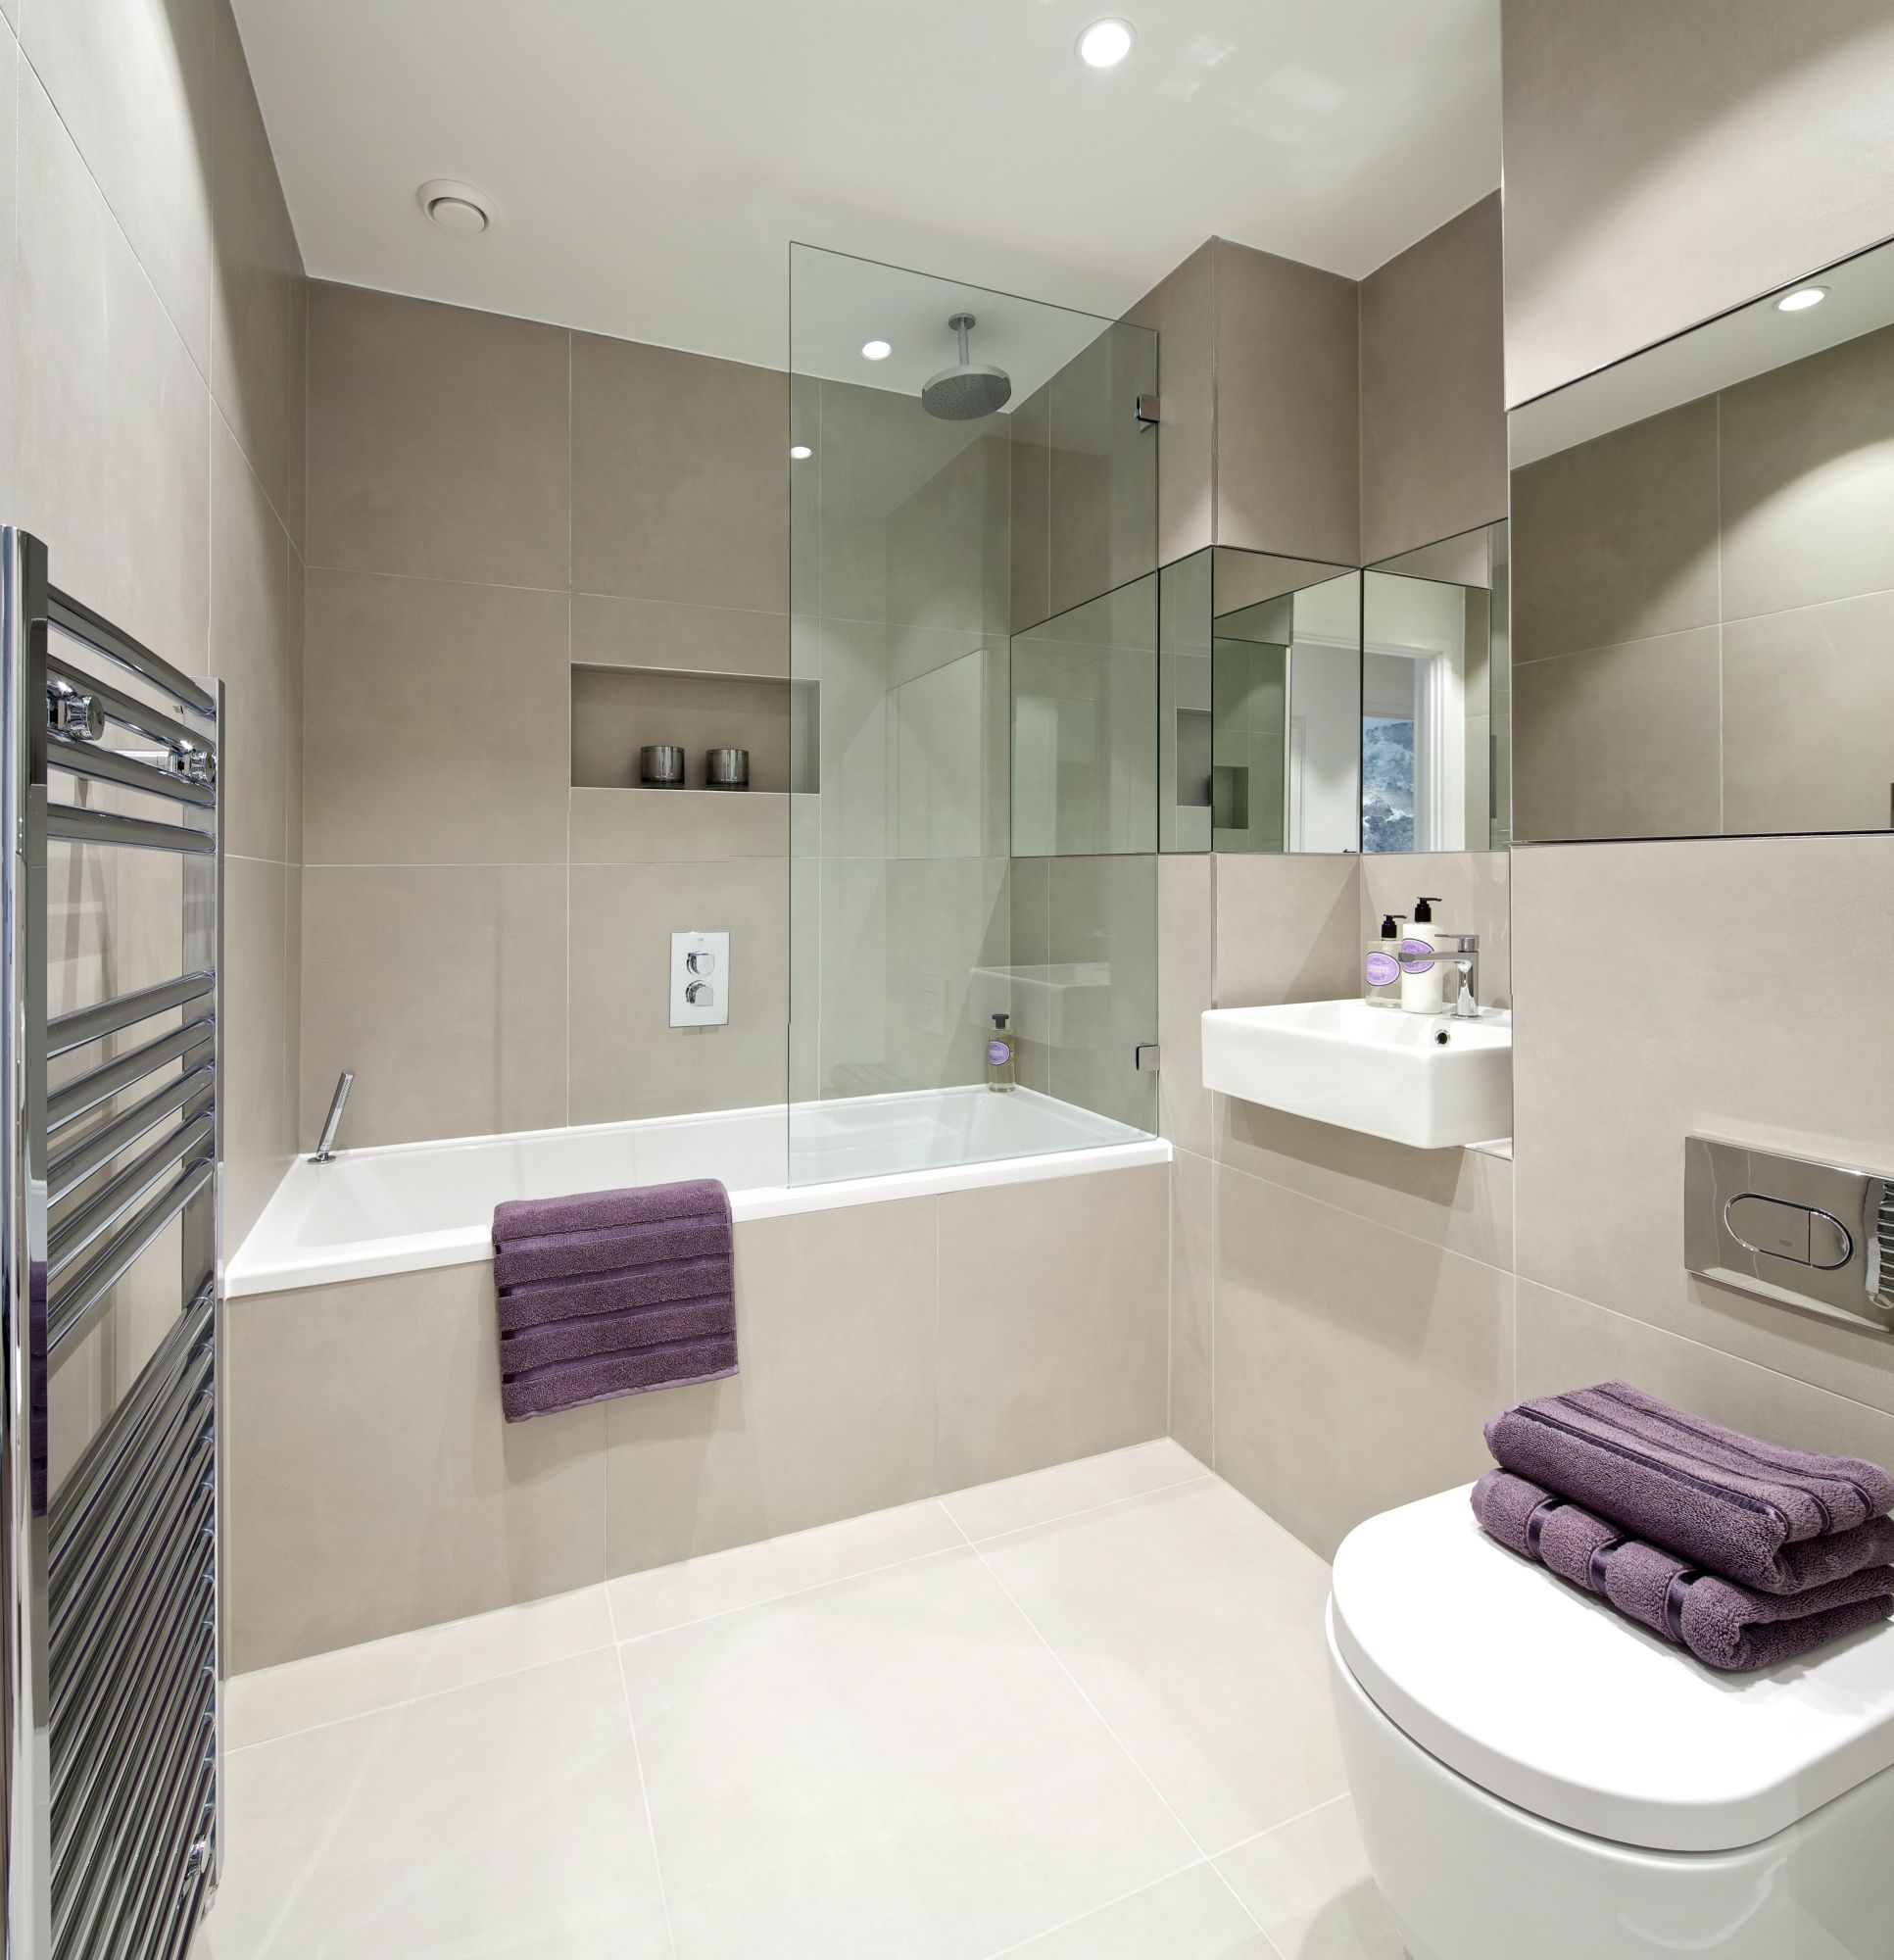 Stunning home interiors bathroom another stunning show for House bathroom design